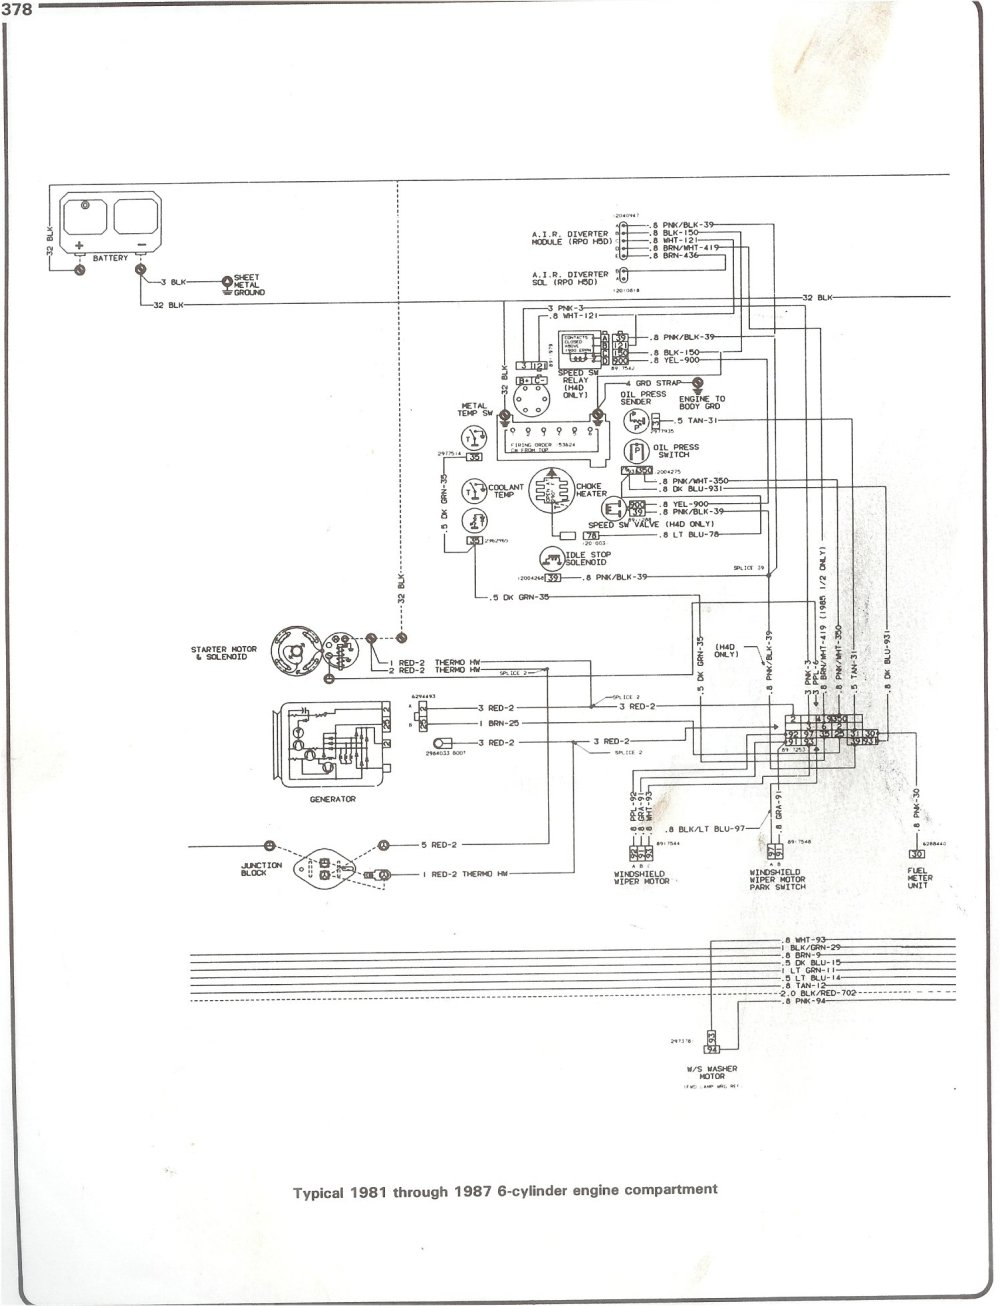 medium resolution of 81 87 i6 engine compartment complete 73 87 wiring diagrams